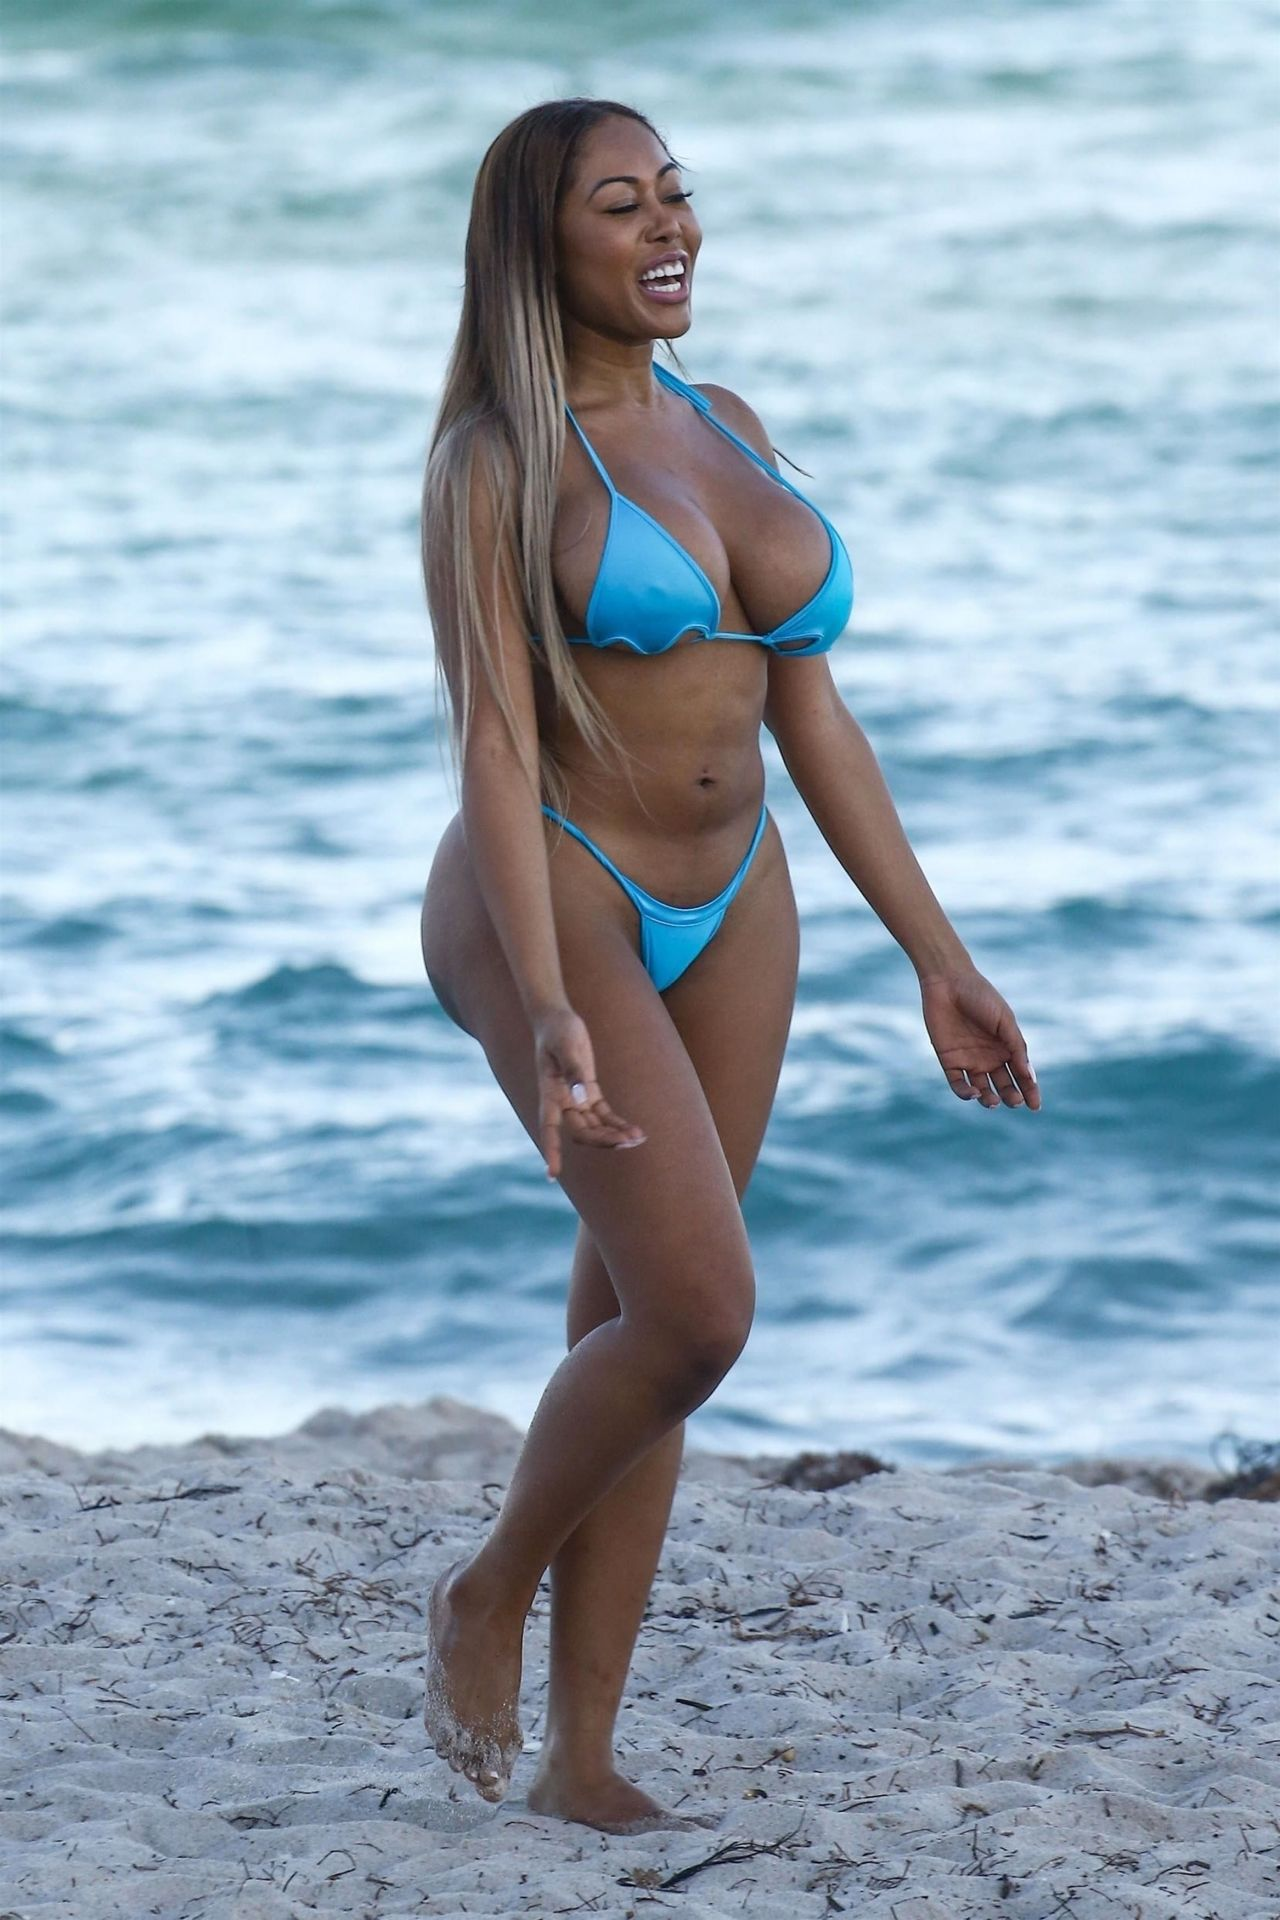 Moriah Mills in Bikini Photoshoot on the beach in Miami Pic 2 of 35